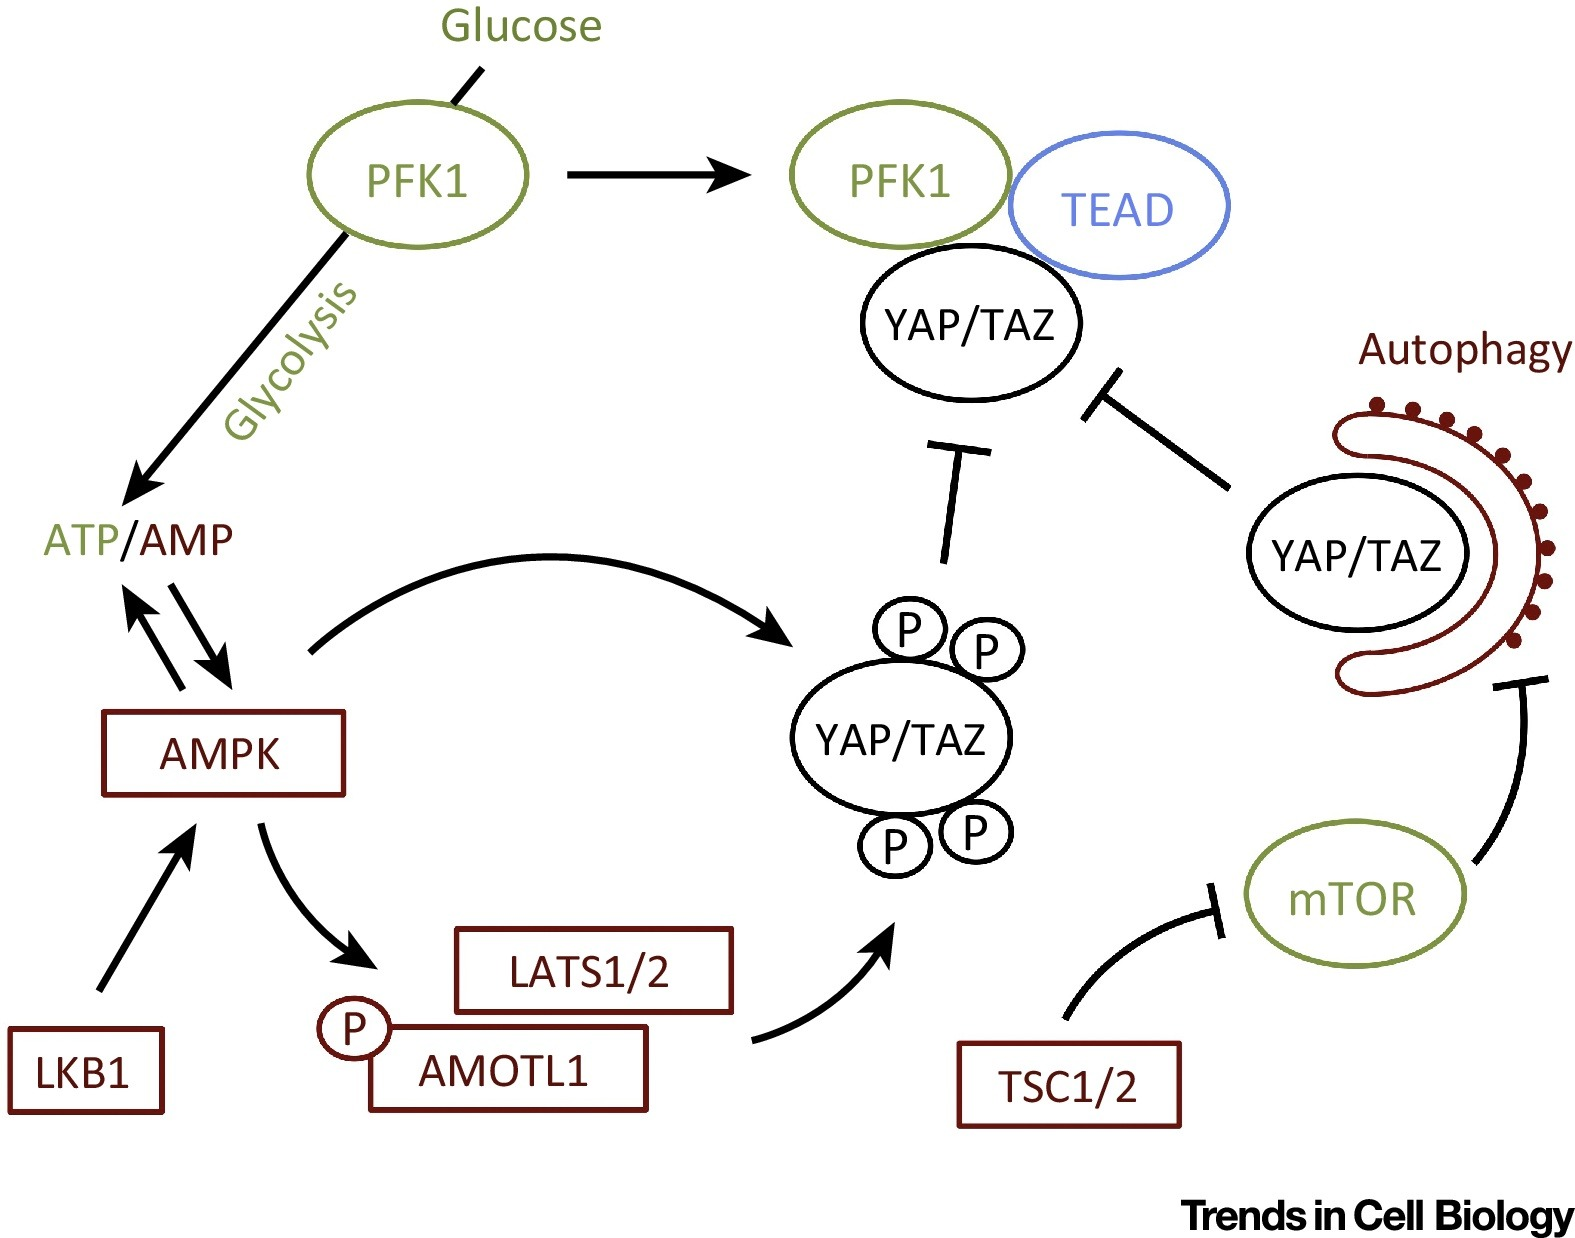 Control Of Yap Taz Activity By Metabolic And Nutrient Sensing Pathways Trends In Cell Biology